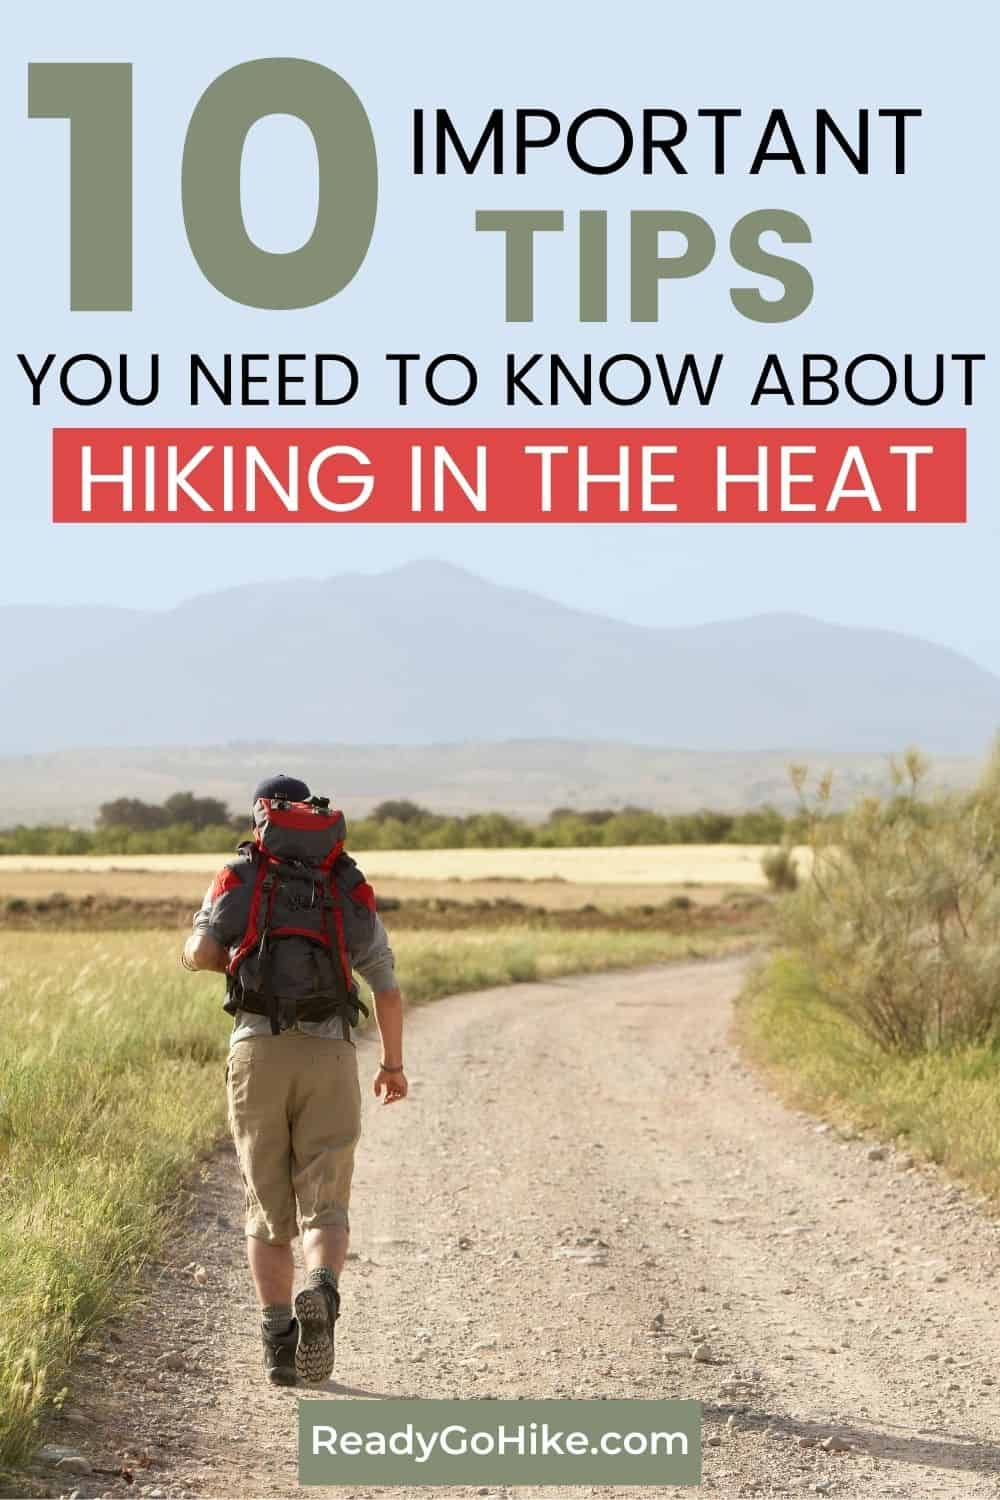 Hiker walking down dirt road text overlay 10 Important Tips You Need to Know About Hiking in the Heat